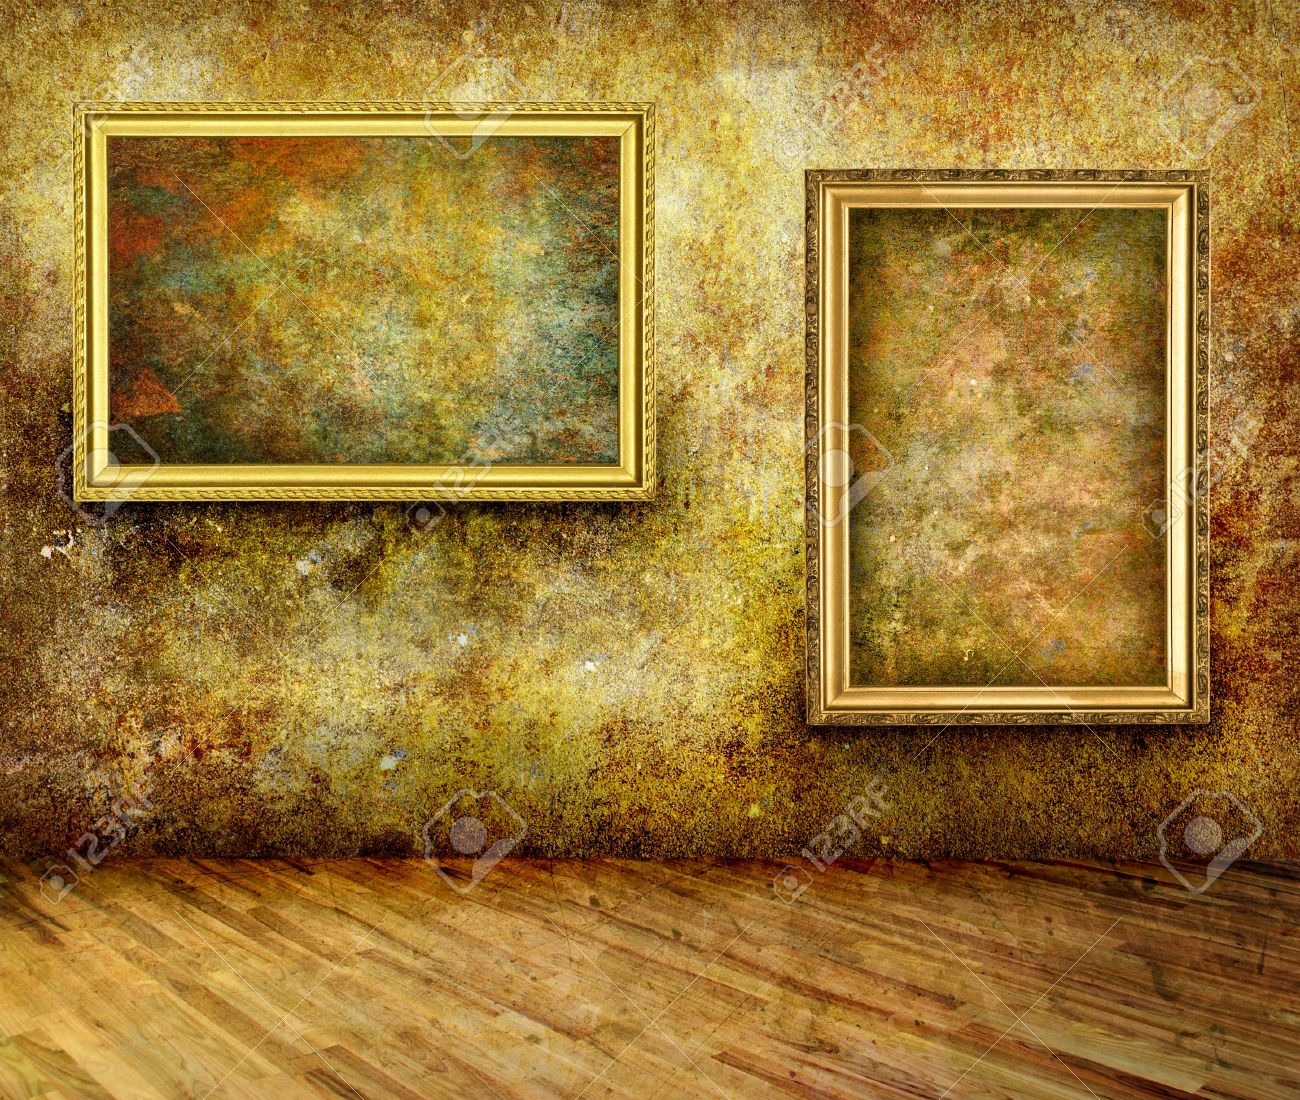 A dark, grungy room with gold frames on the wall Stock Photo - 18188705